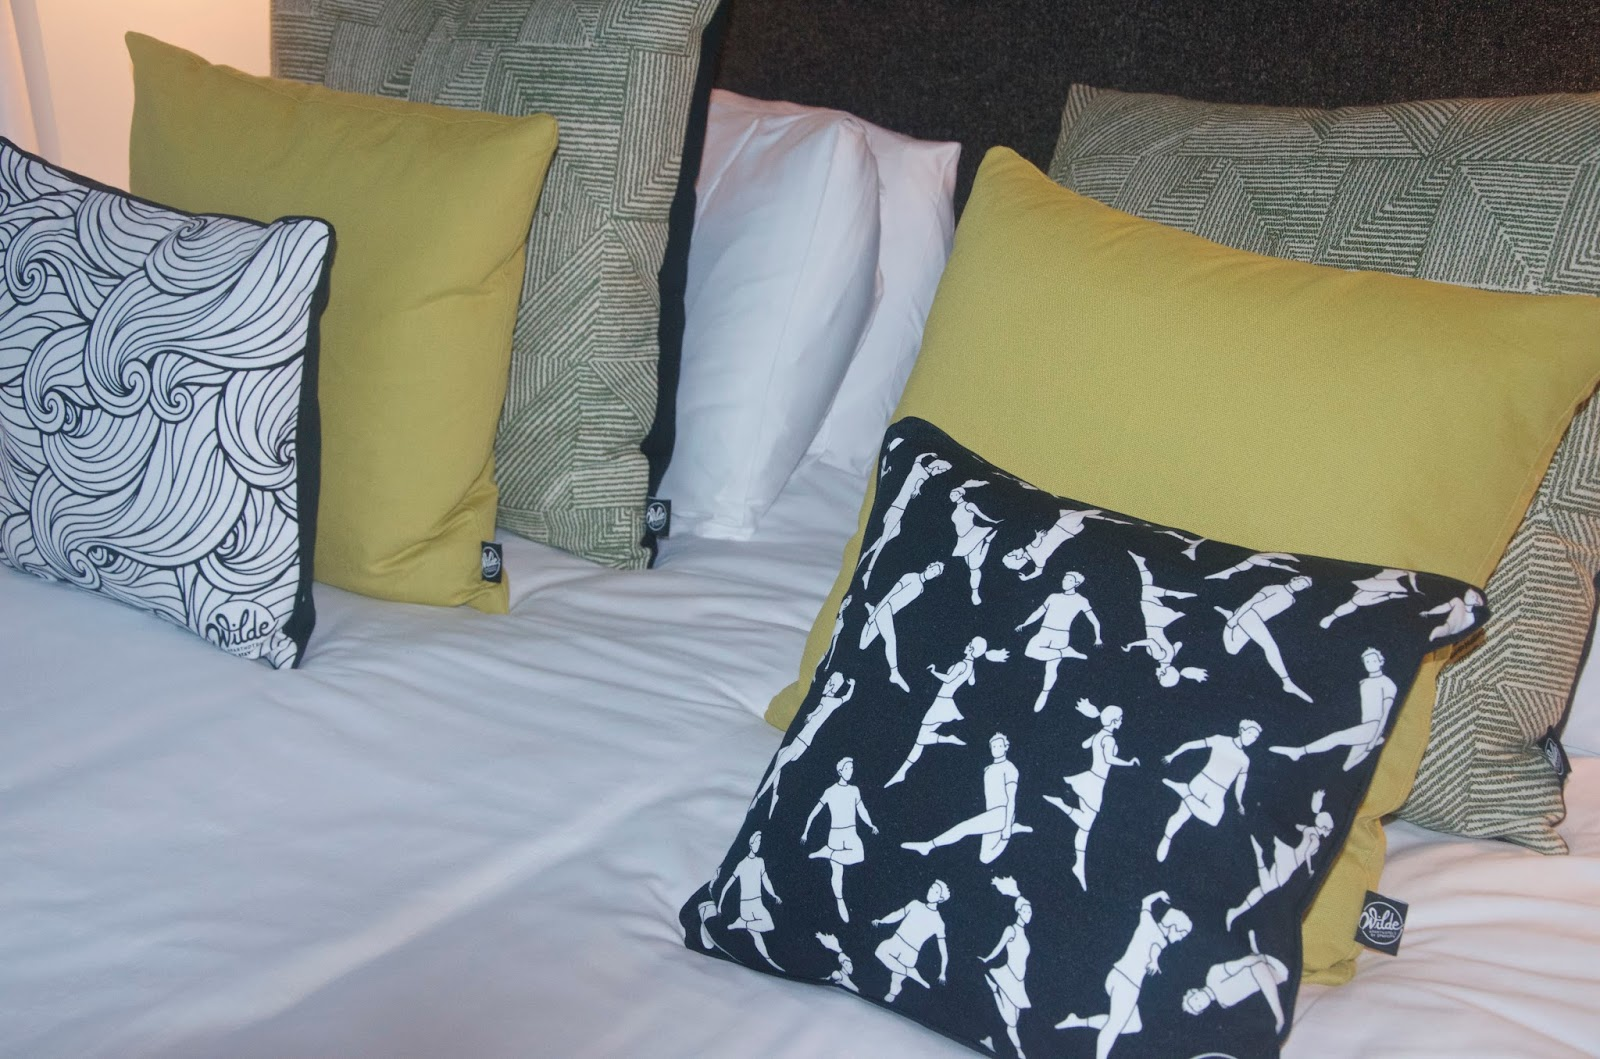 Wilde Aparthotels by Staycity bedding and throw pillows